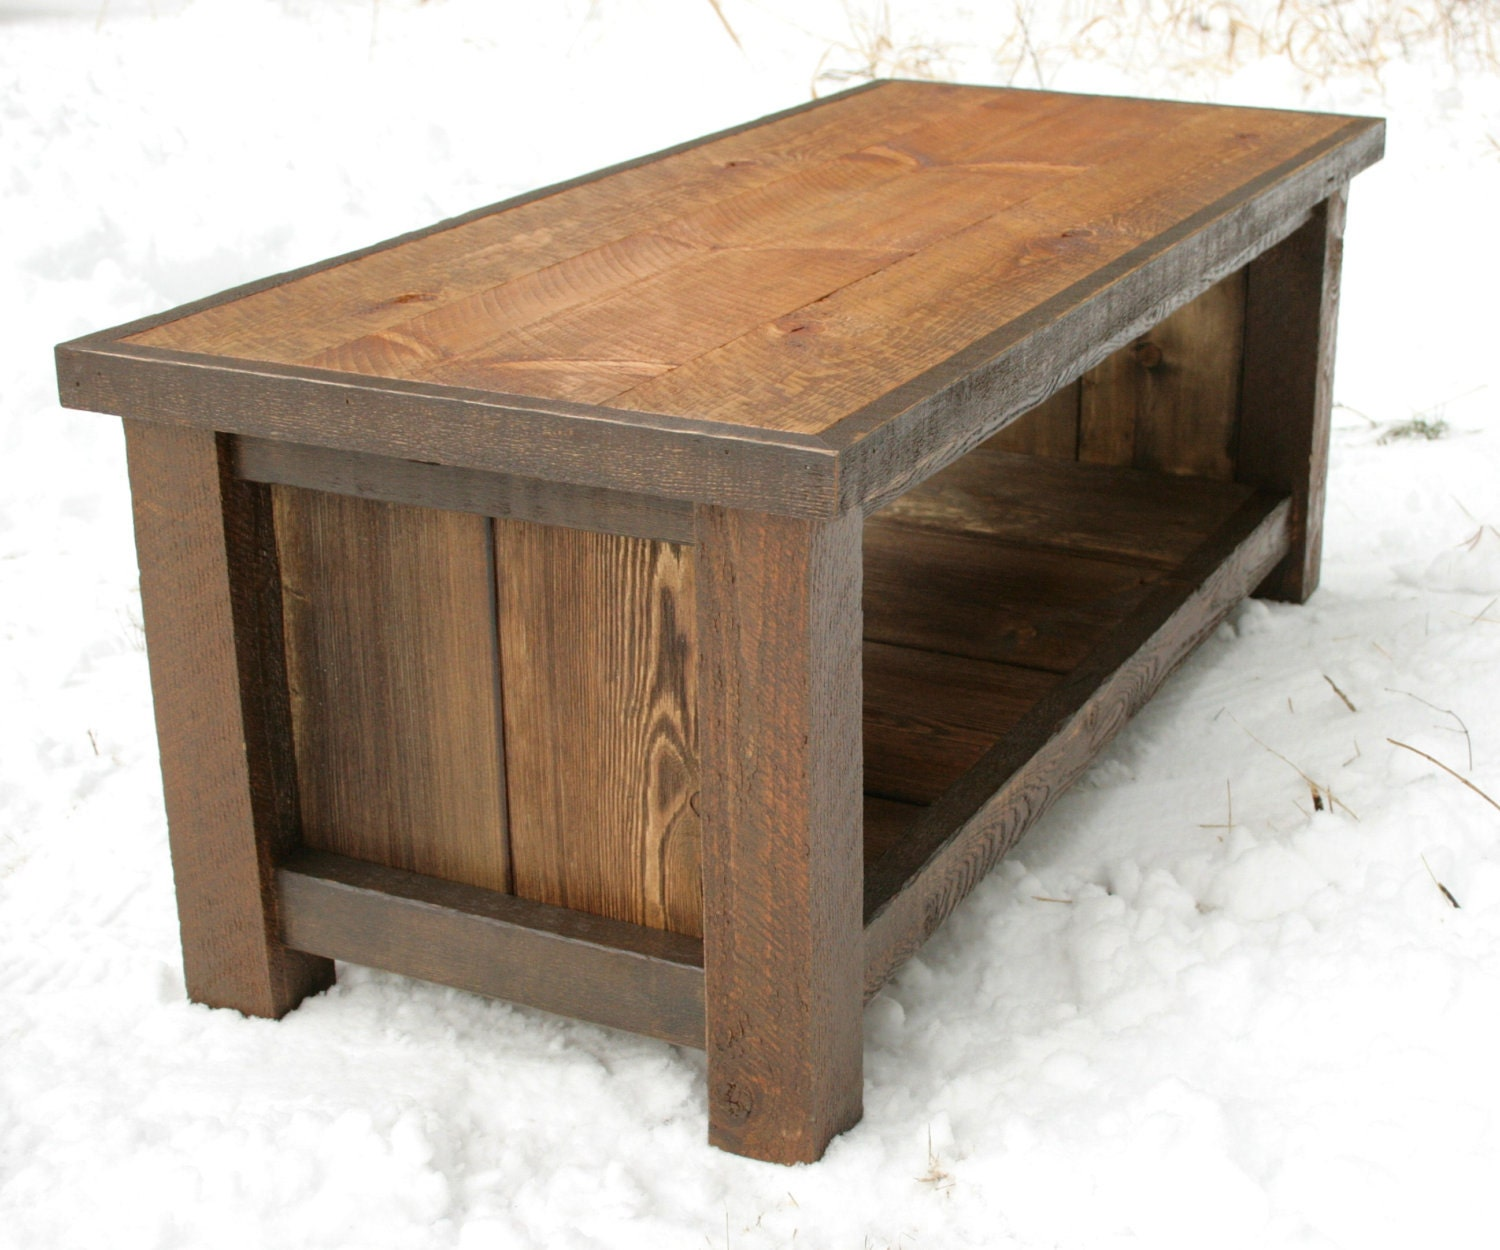 rustic reclaimed bench coffee table by echopeakdesign on etsy